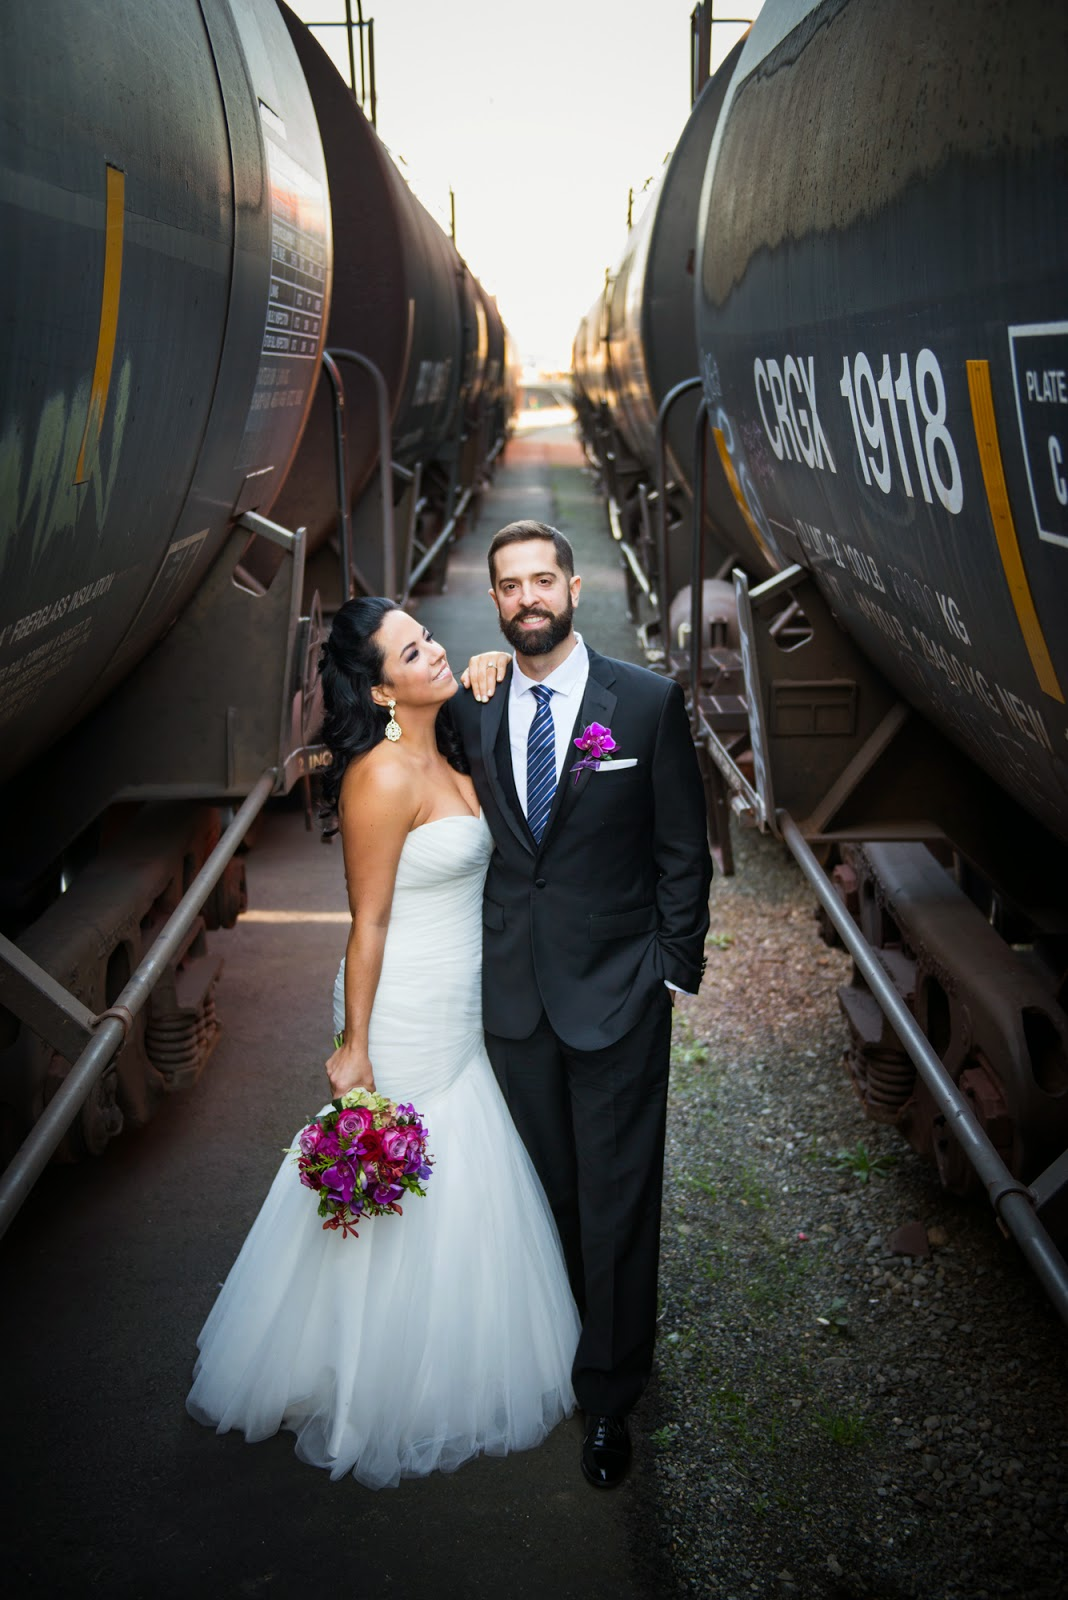 Urban wedding photography in Seattle - cultivatedrambler.com